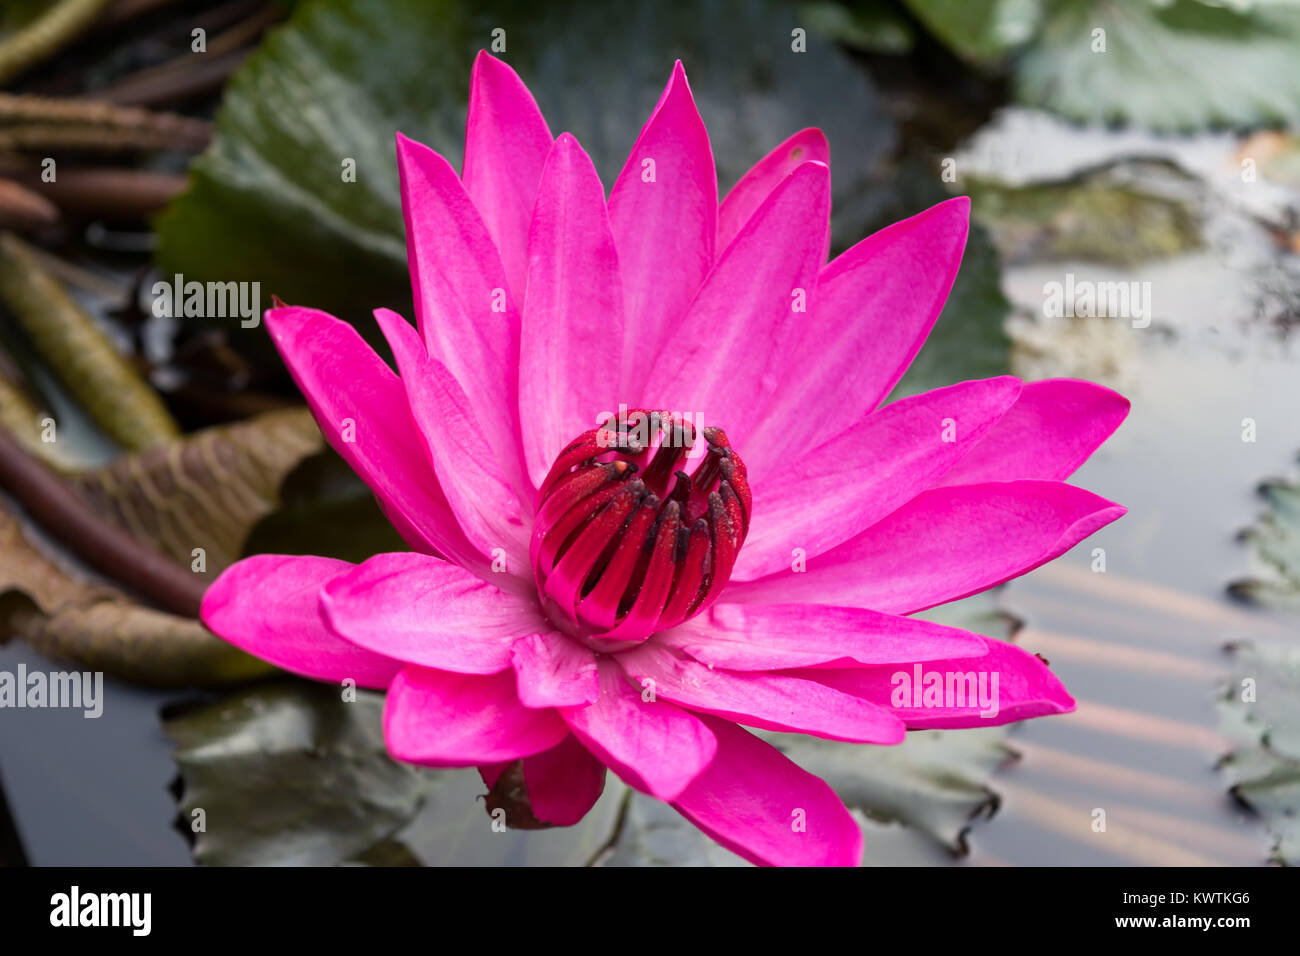 Closeup Lotus Flower On Water With Leaves In Garden Park Pond Stock